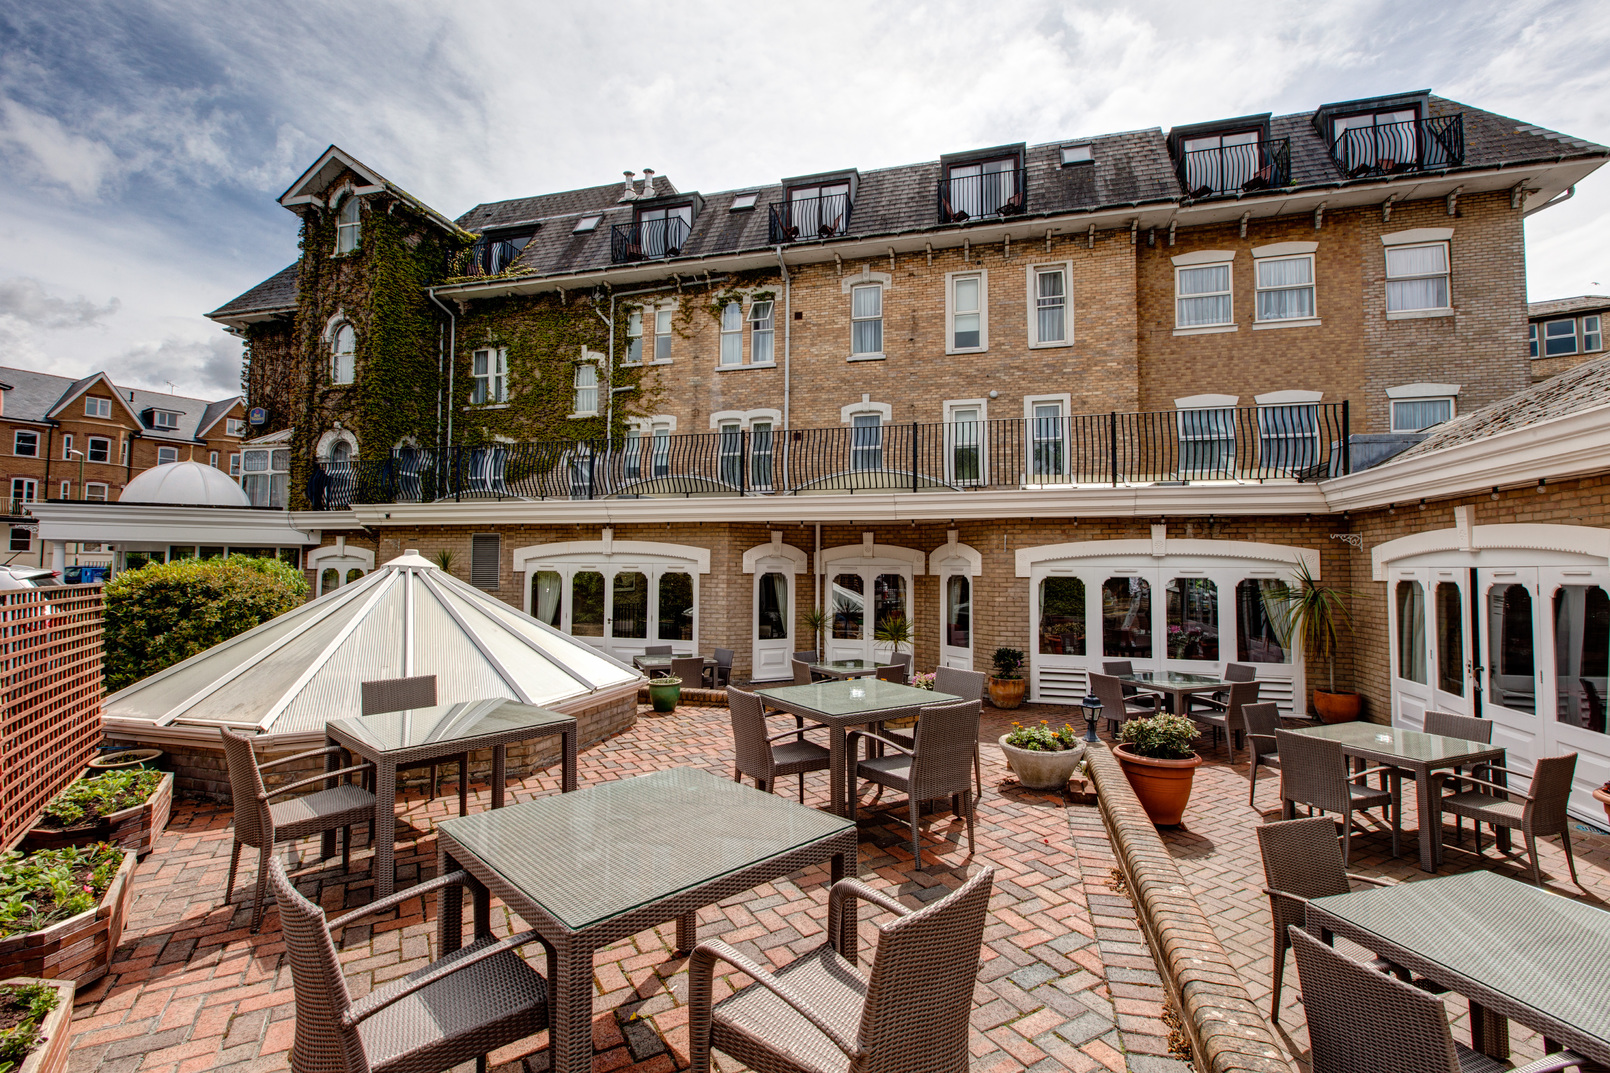 2 Bed Flat Bournemouth Best Western Plus The Connaught Hotel